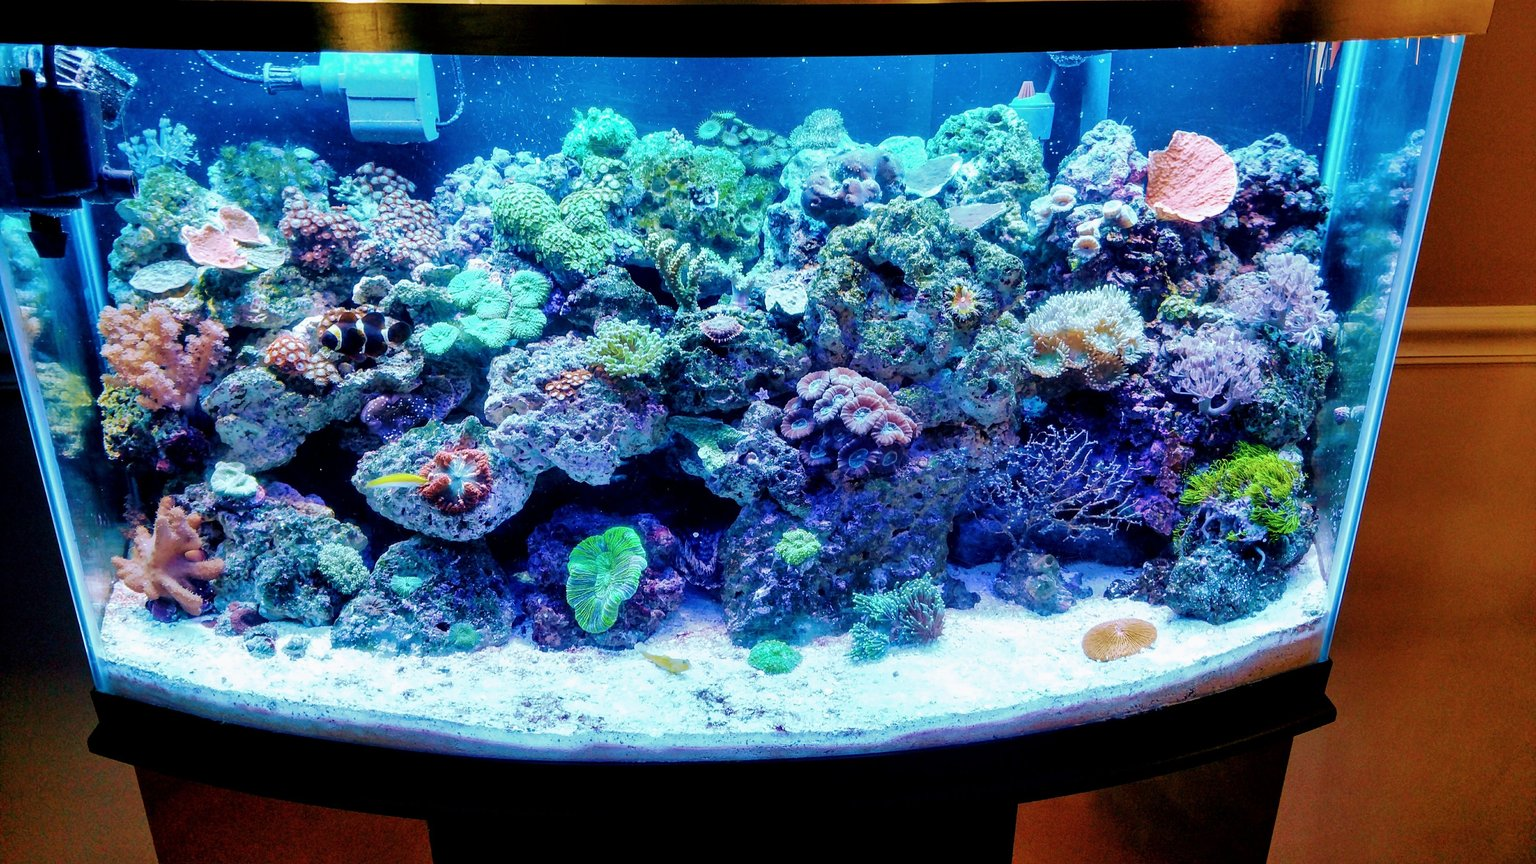 46 gallons reef tank (mostly live coral and fish) - 46 bowfront reef Inverts, softies,LPs, and limited sps